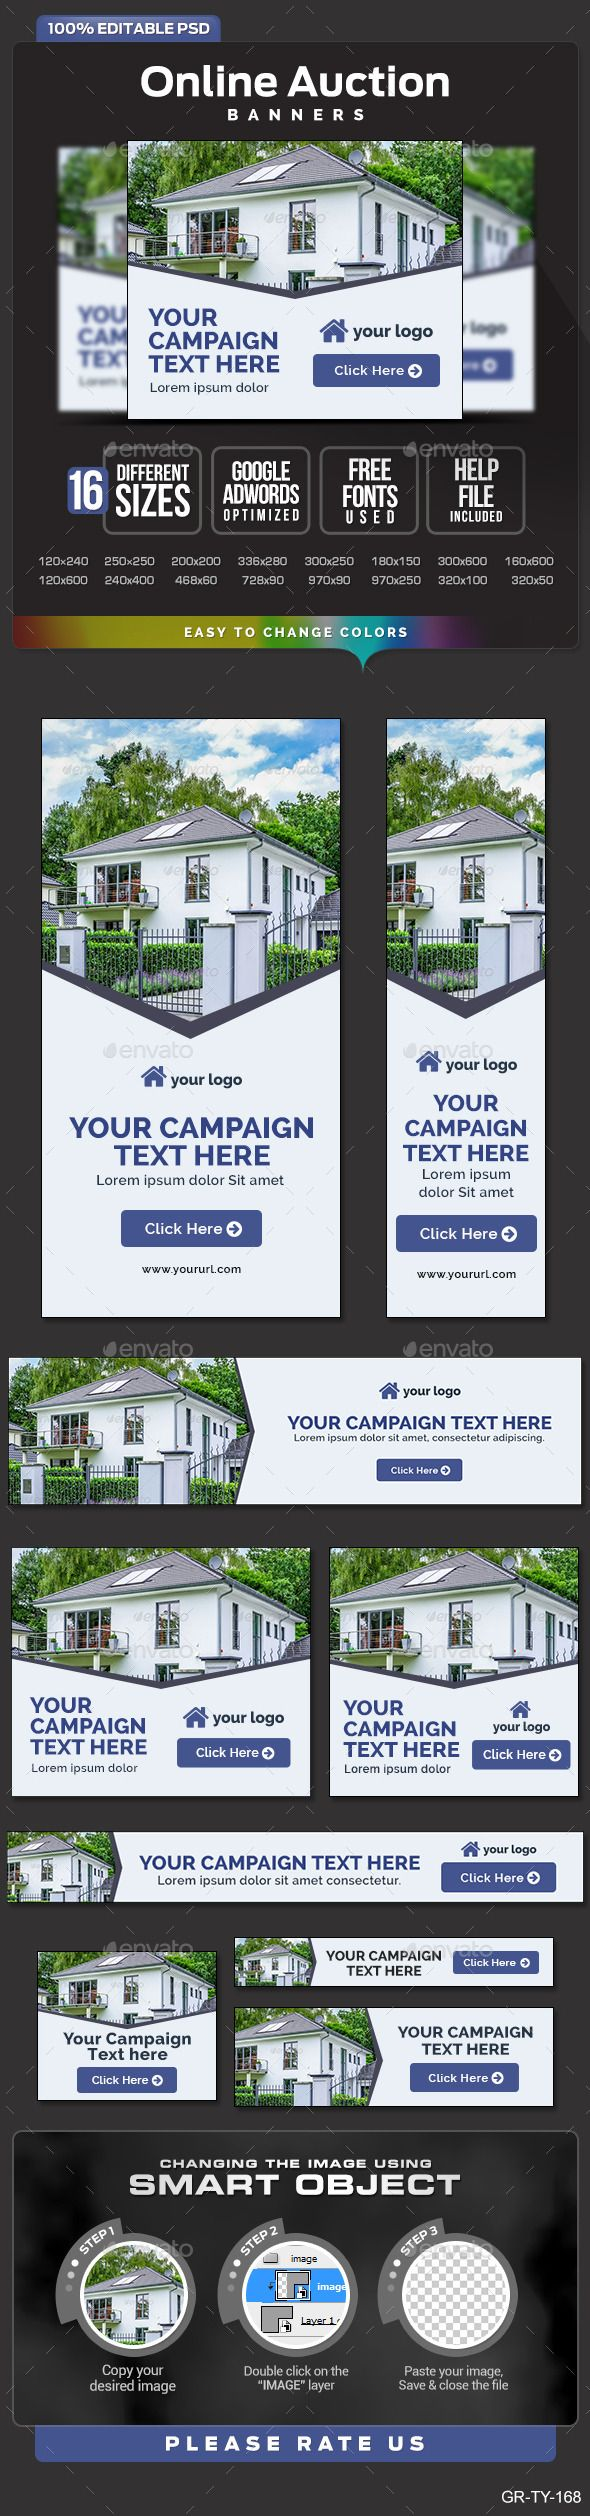 Real Estate Auction Web Banners Template PSD | Buy and Download: http://graphicriver.net/item/real-estate-auction-banners/9725461?WT.oss_phrase=&WT.oss_rank=25&WT.z_author=doto&WT.ac=search_thumb&ref=ksioks